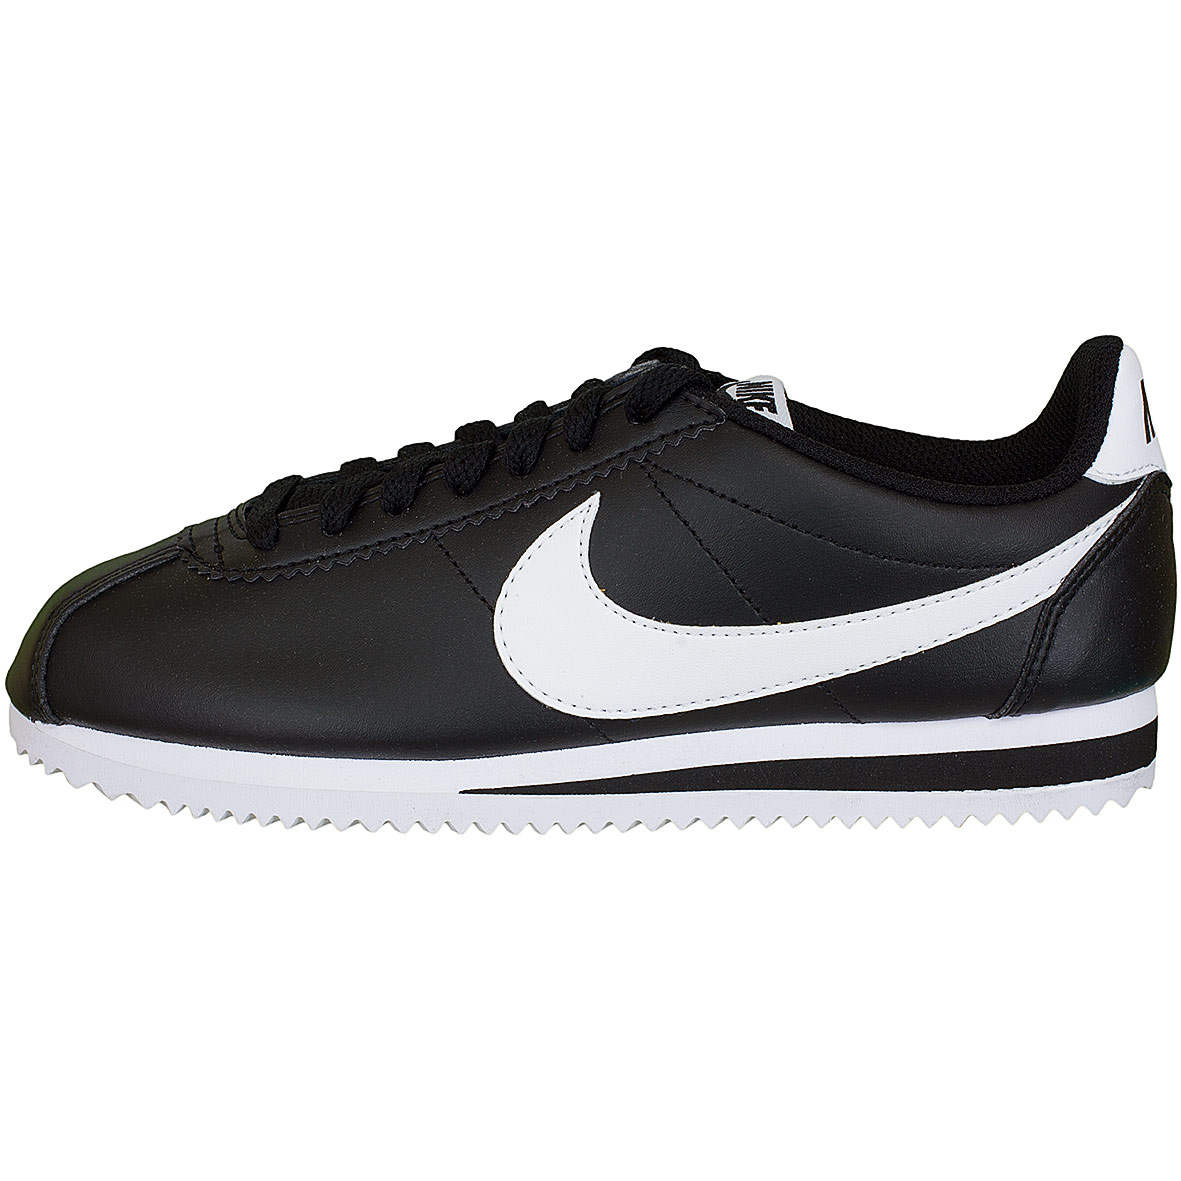 nike damen sneaker cortez leather schwarz wei hier. Black Bedroom Furniture Sets. Home Design Ideas